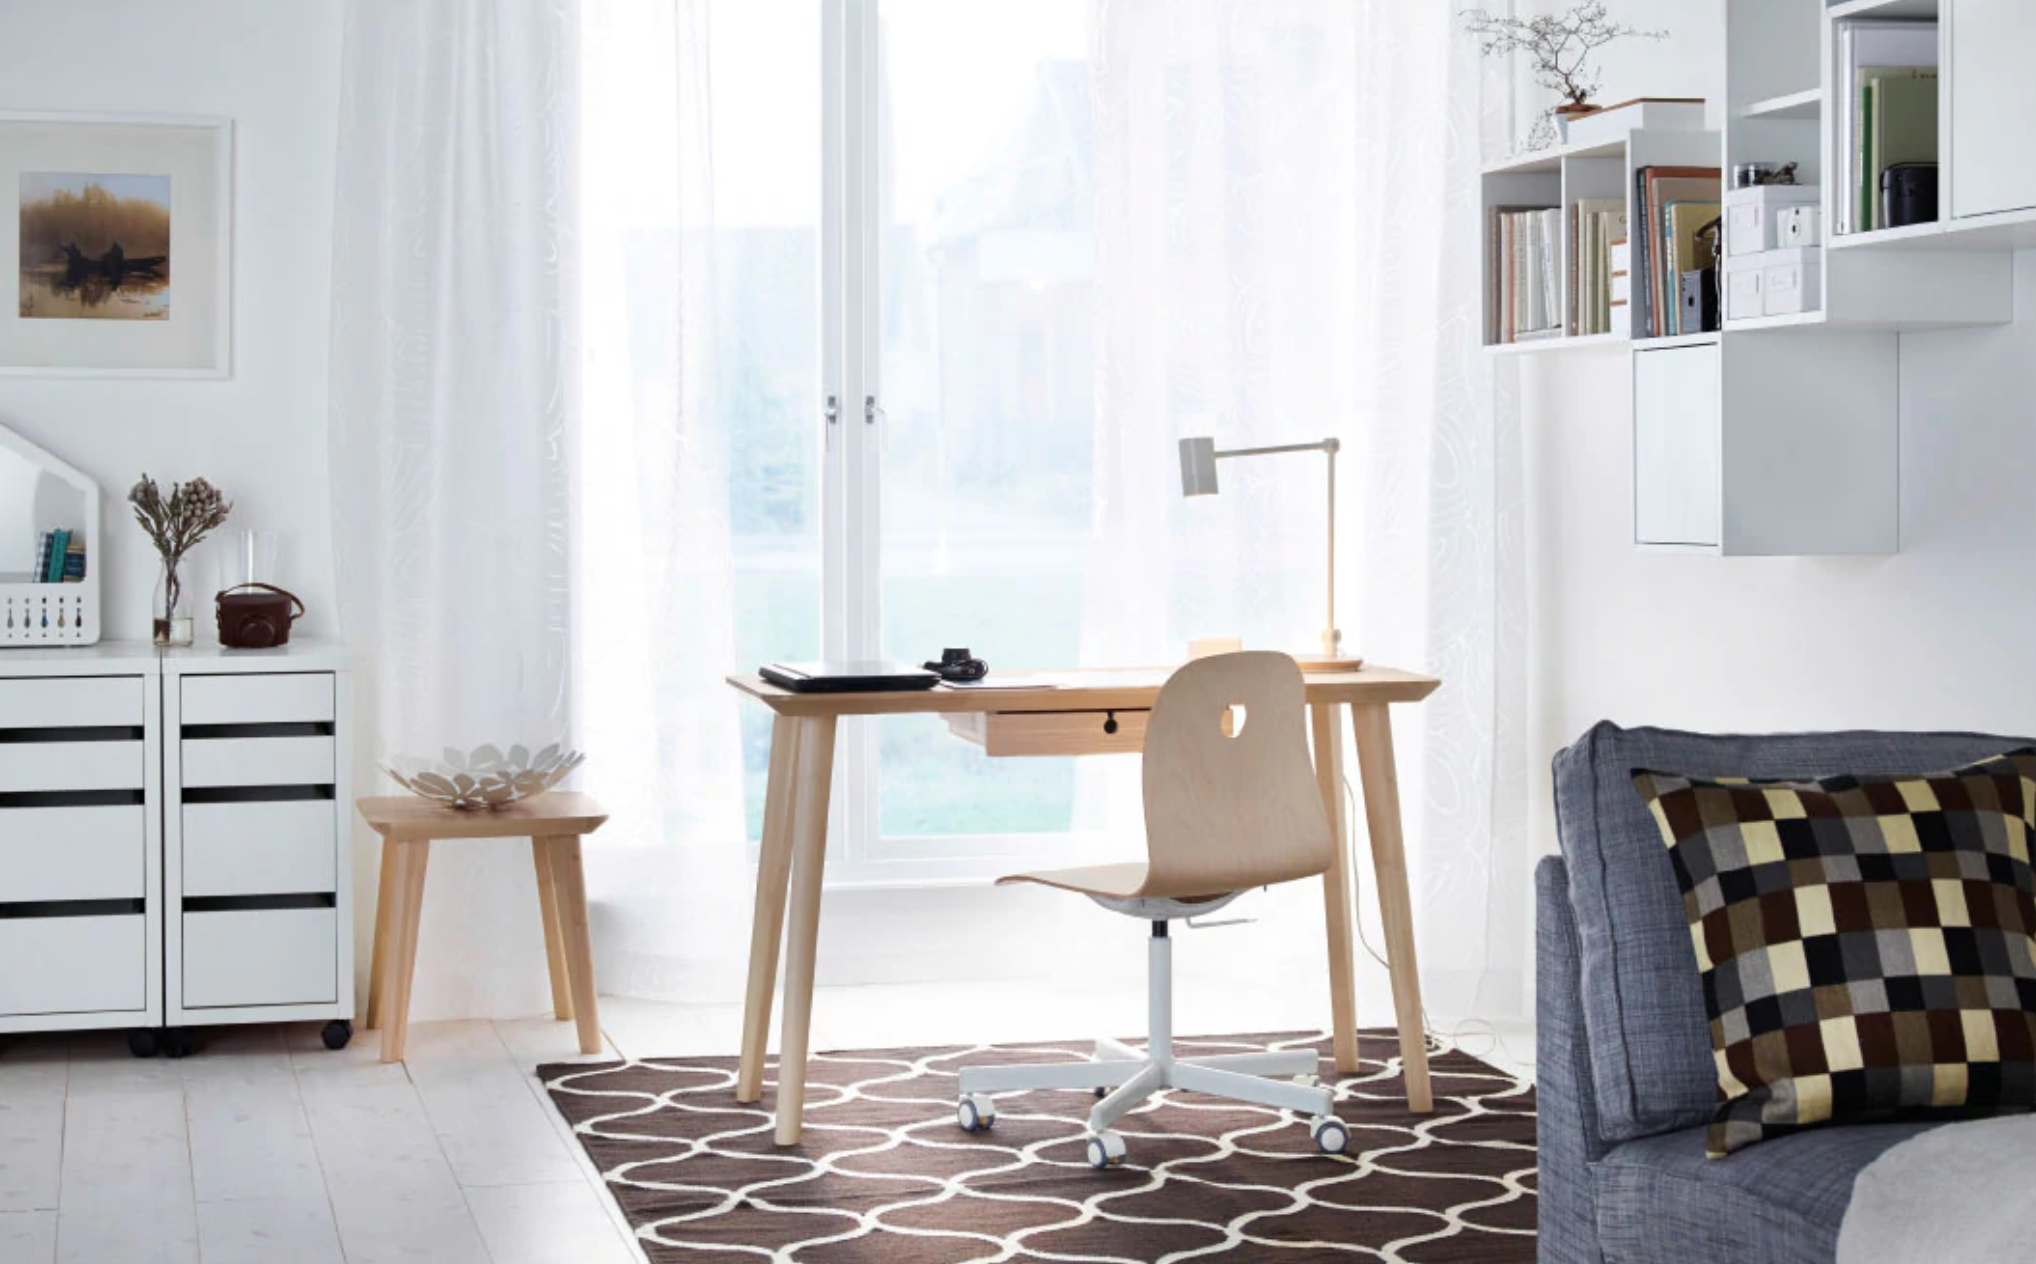 Feeling Burned Out? These 8 Small Workspace Changes Can Help | Hunker